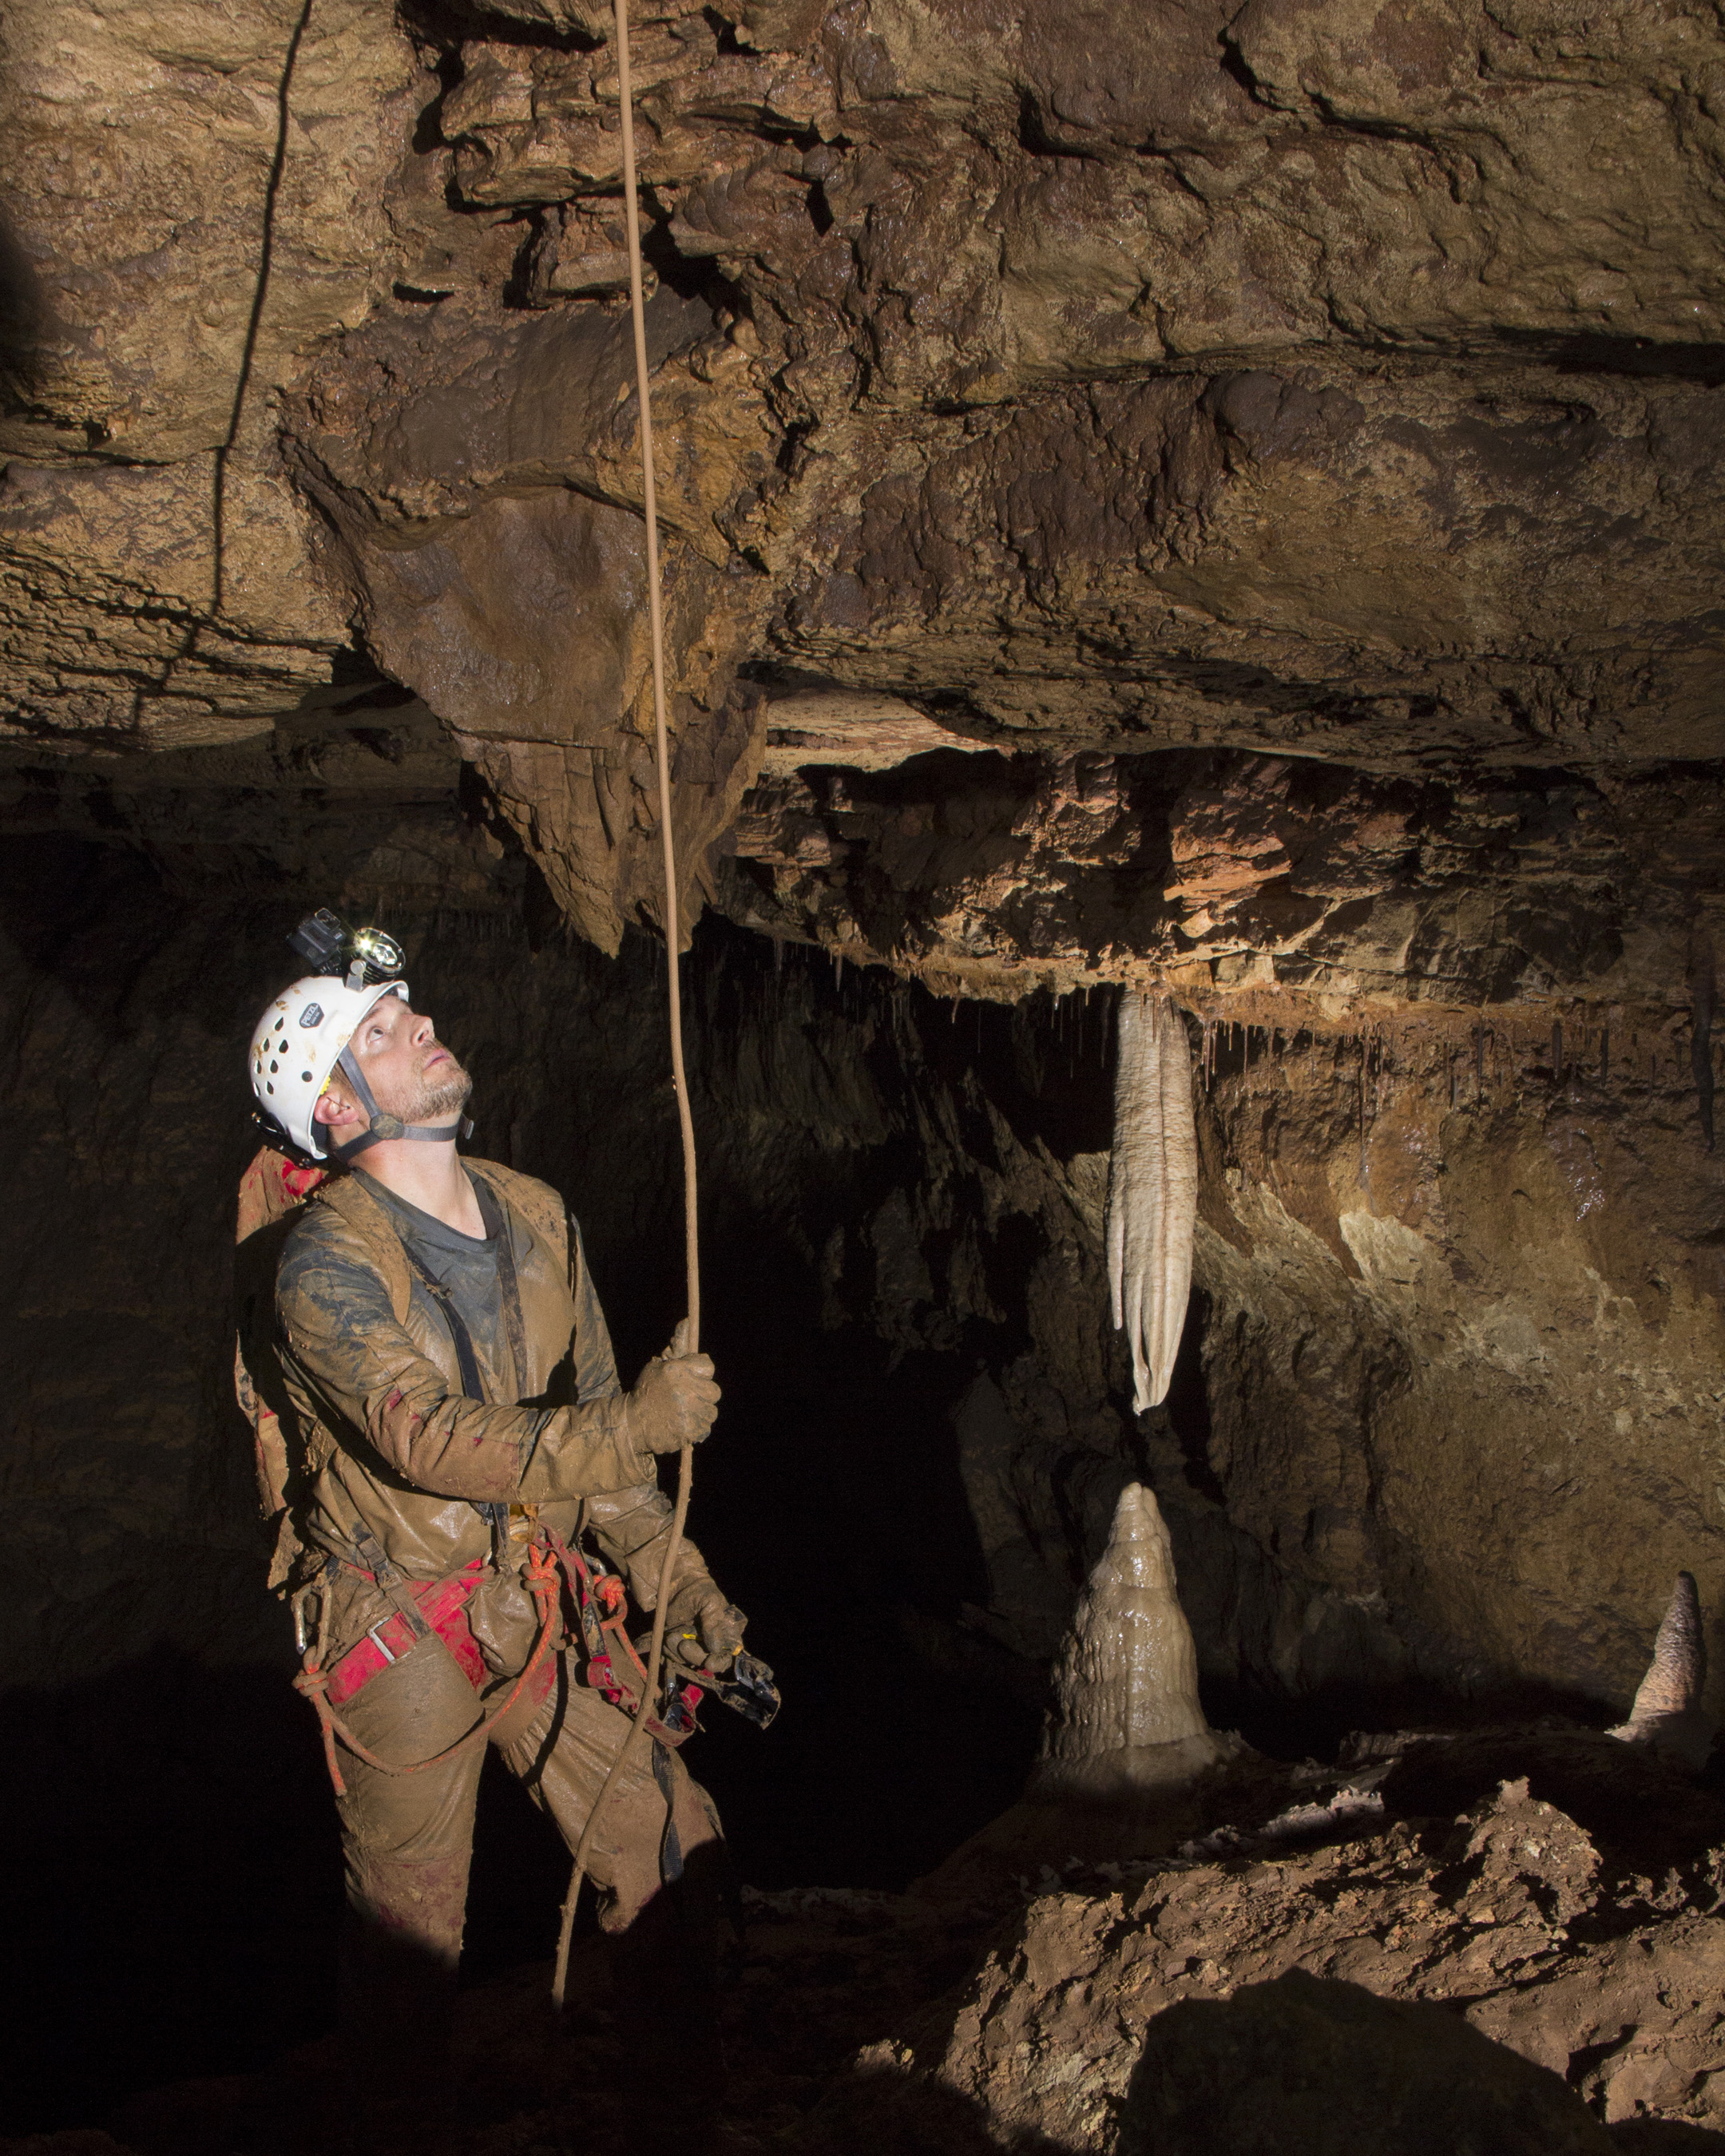 Man in helmet and head lamp looking up towards a stalactite